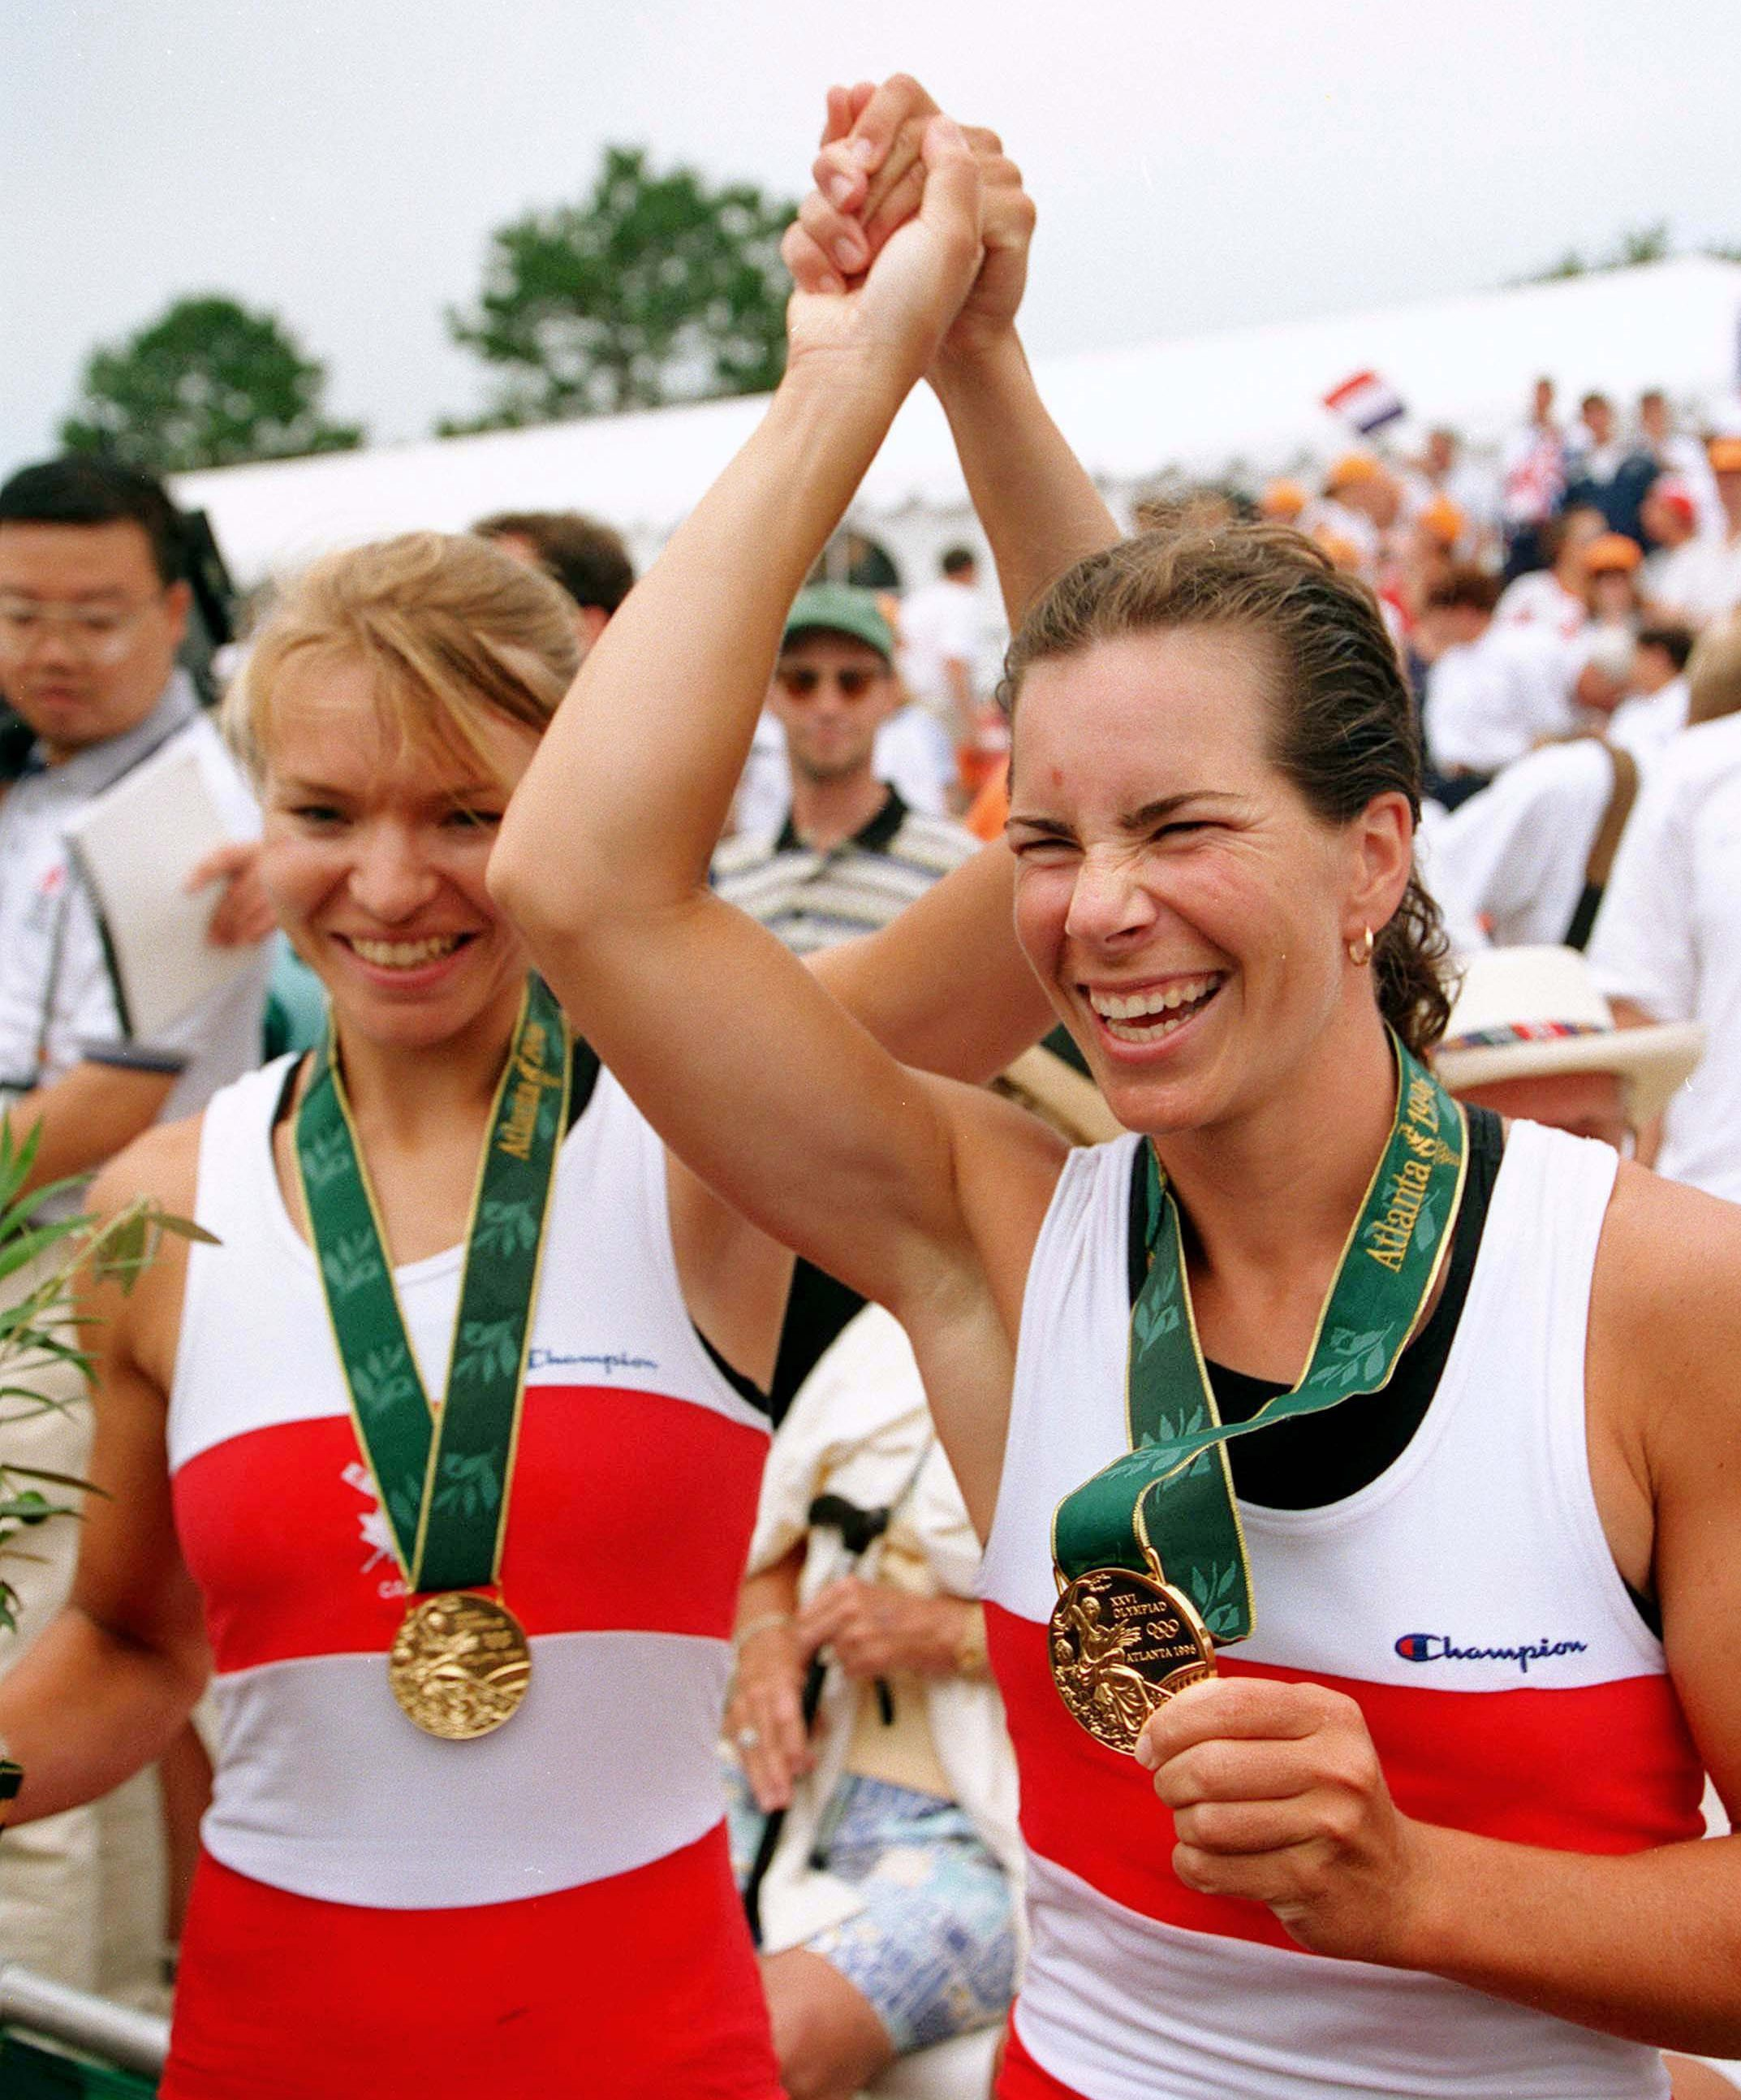 Marnie McBean and Kathleen Heddle with the gold medals at Atlanta 1996